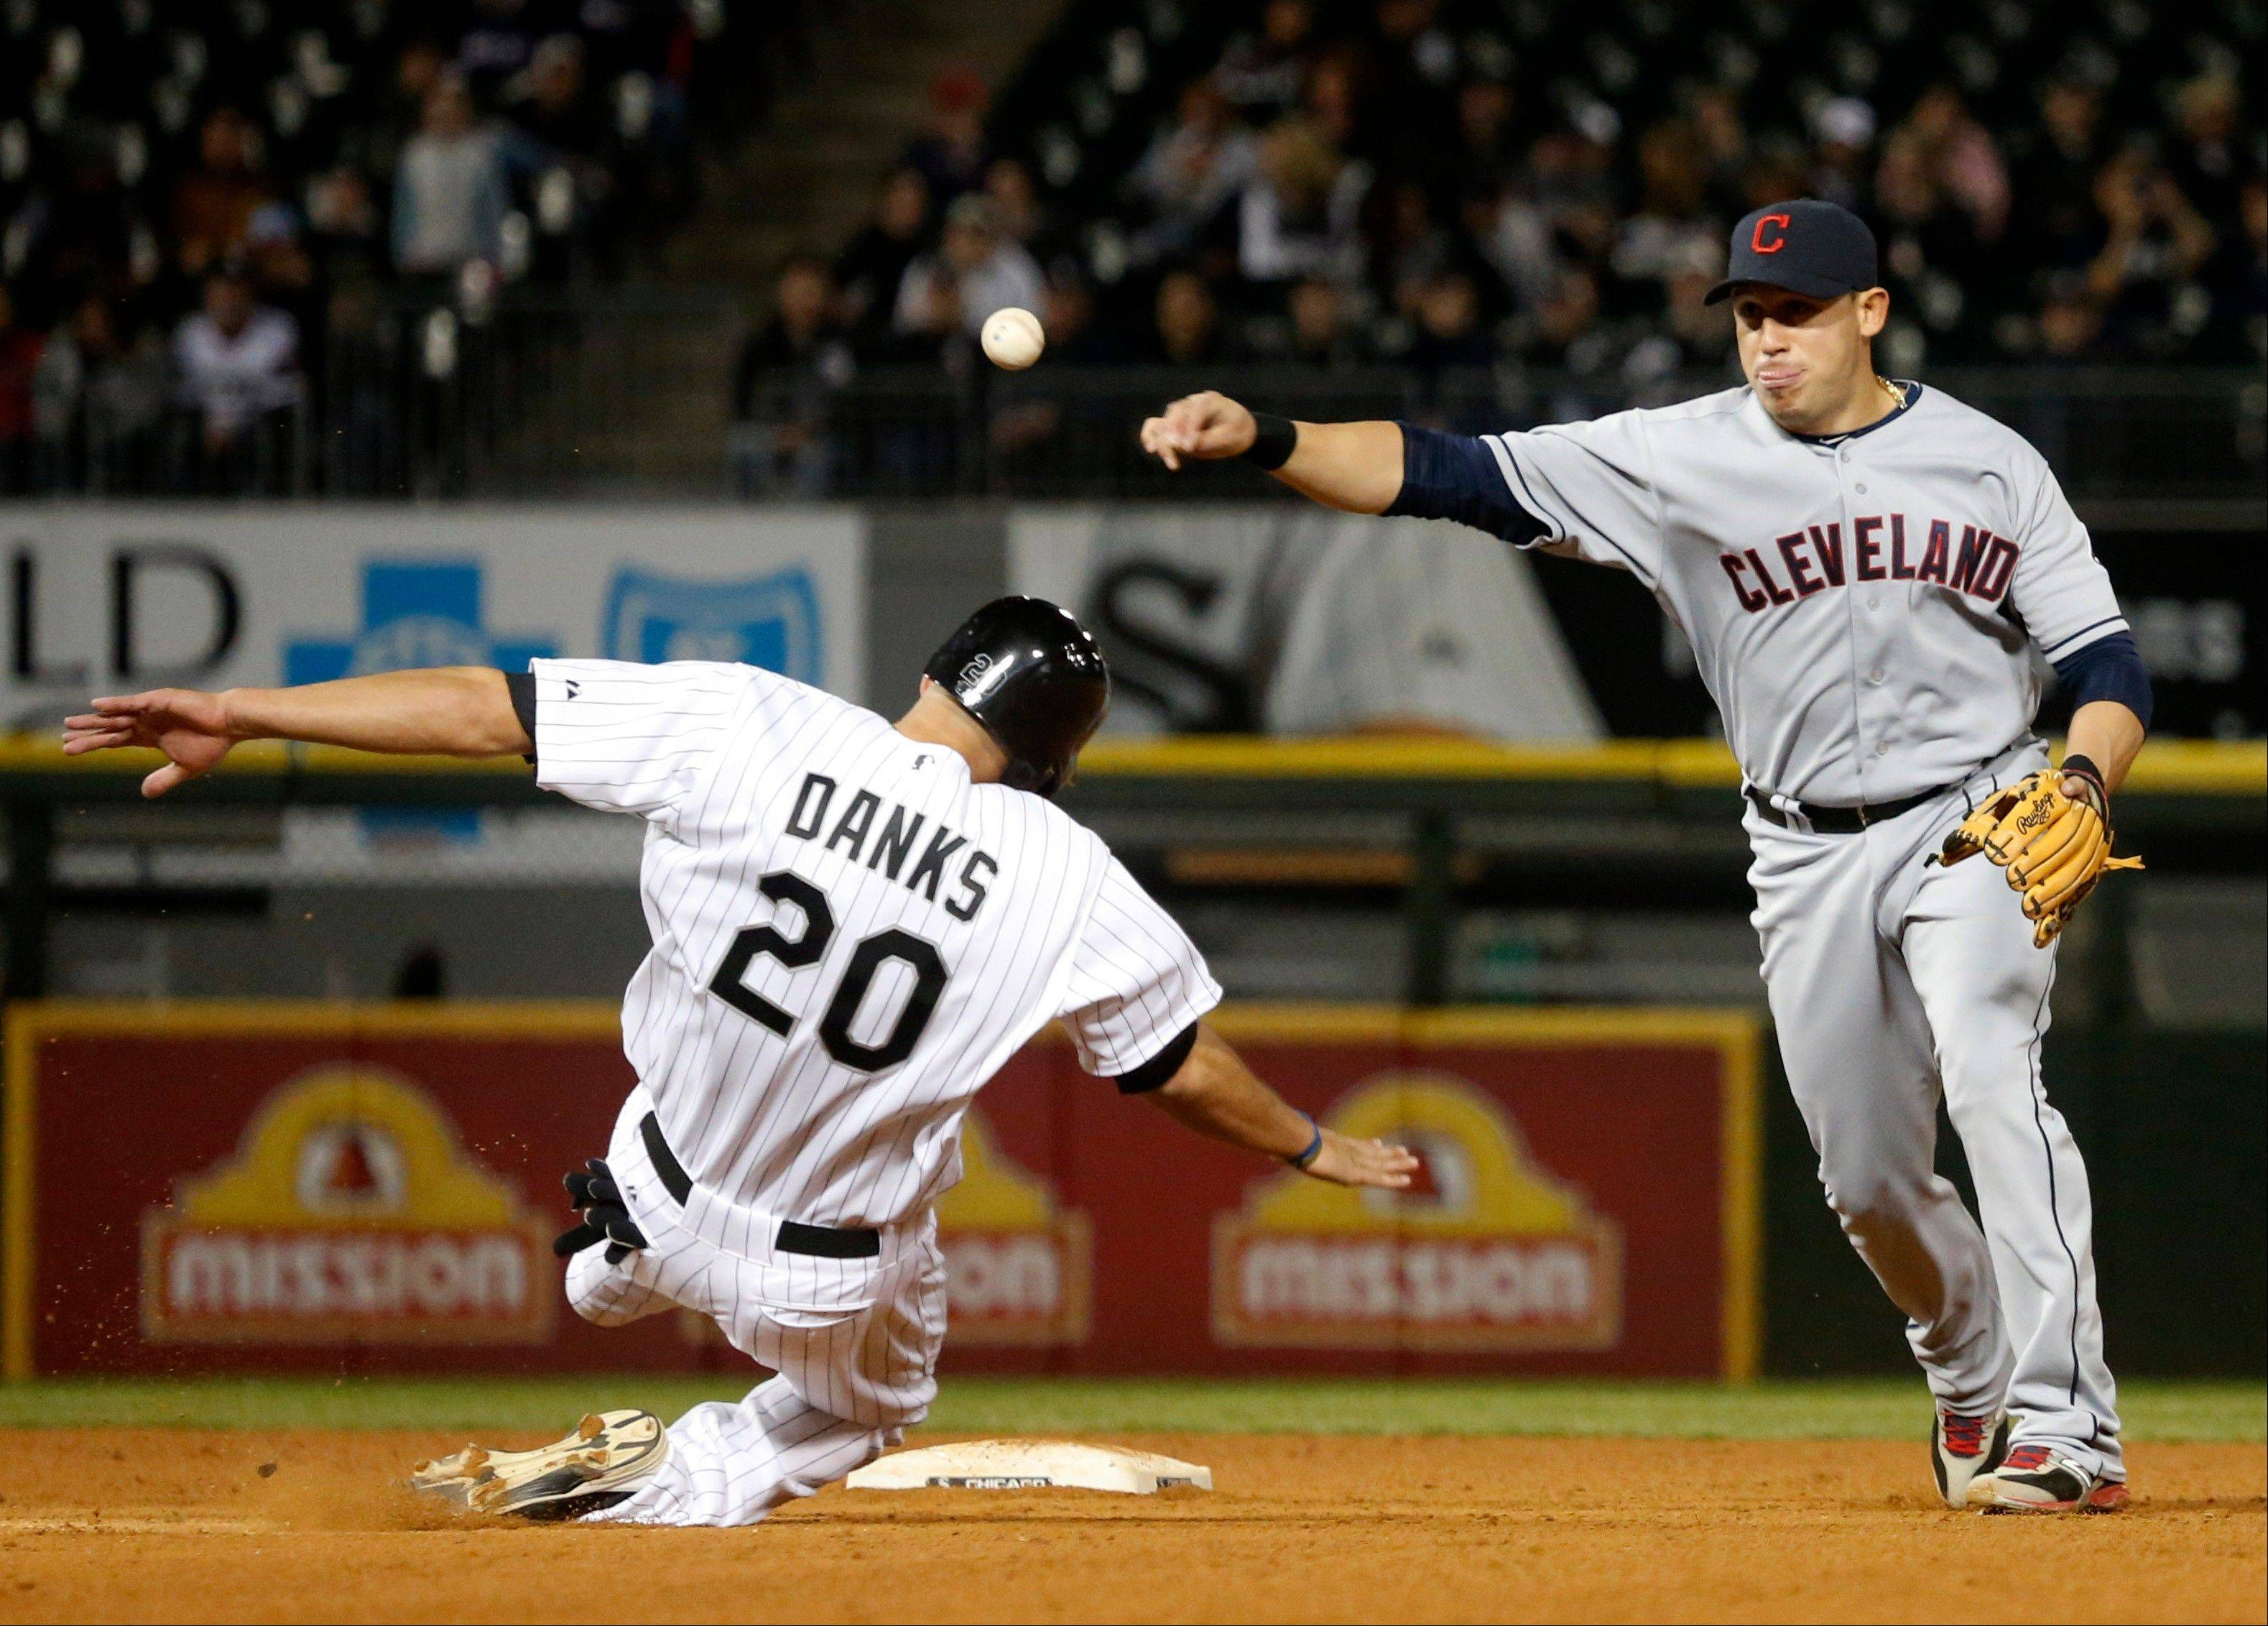 Cleveland shortstop Asdrubal Cabrera turns a double play, forcing Chicago�s Jordan Danks at second and getting Alejandro De Aza at first, during the seventh inning Monday at U.S. Cellular Field.